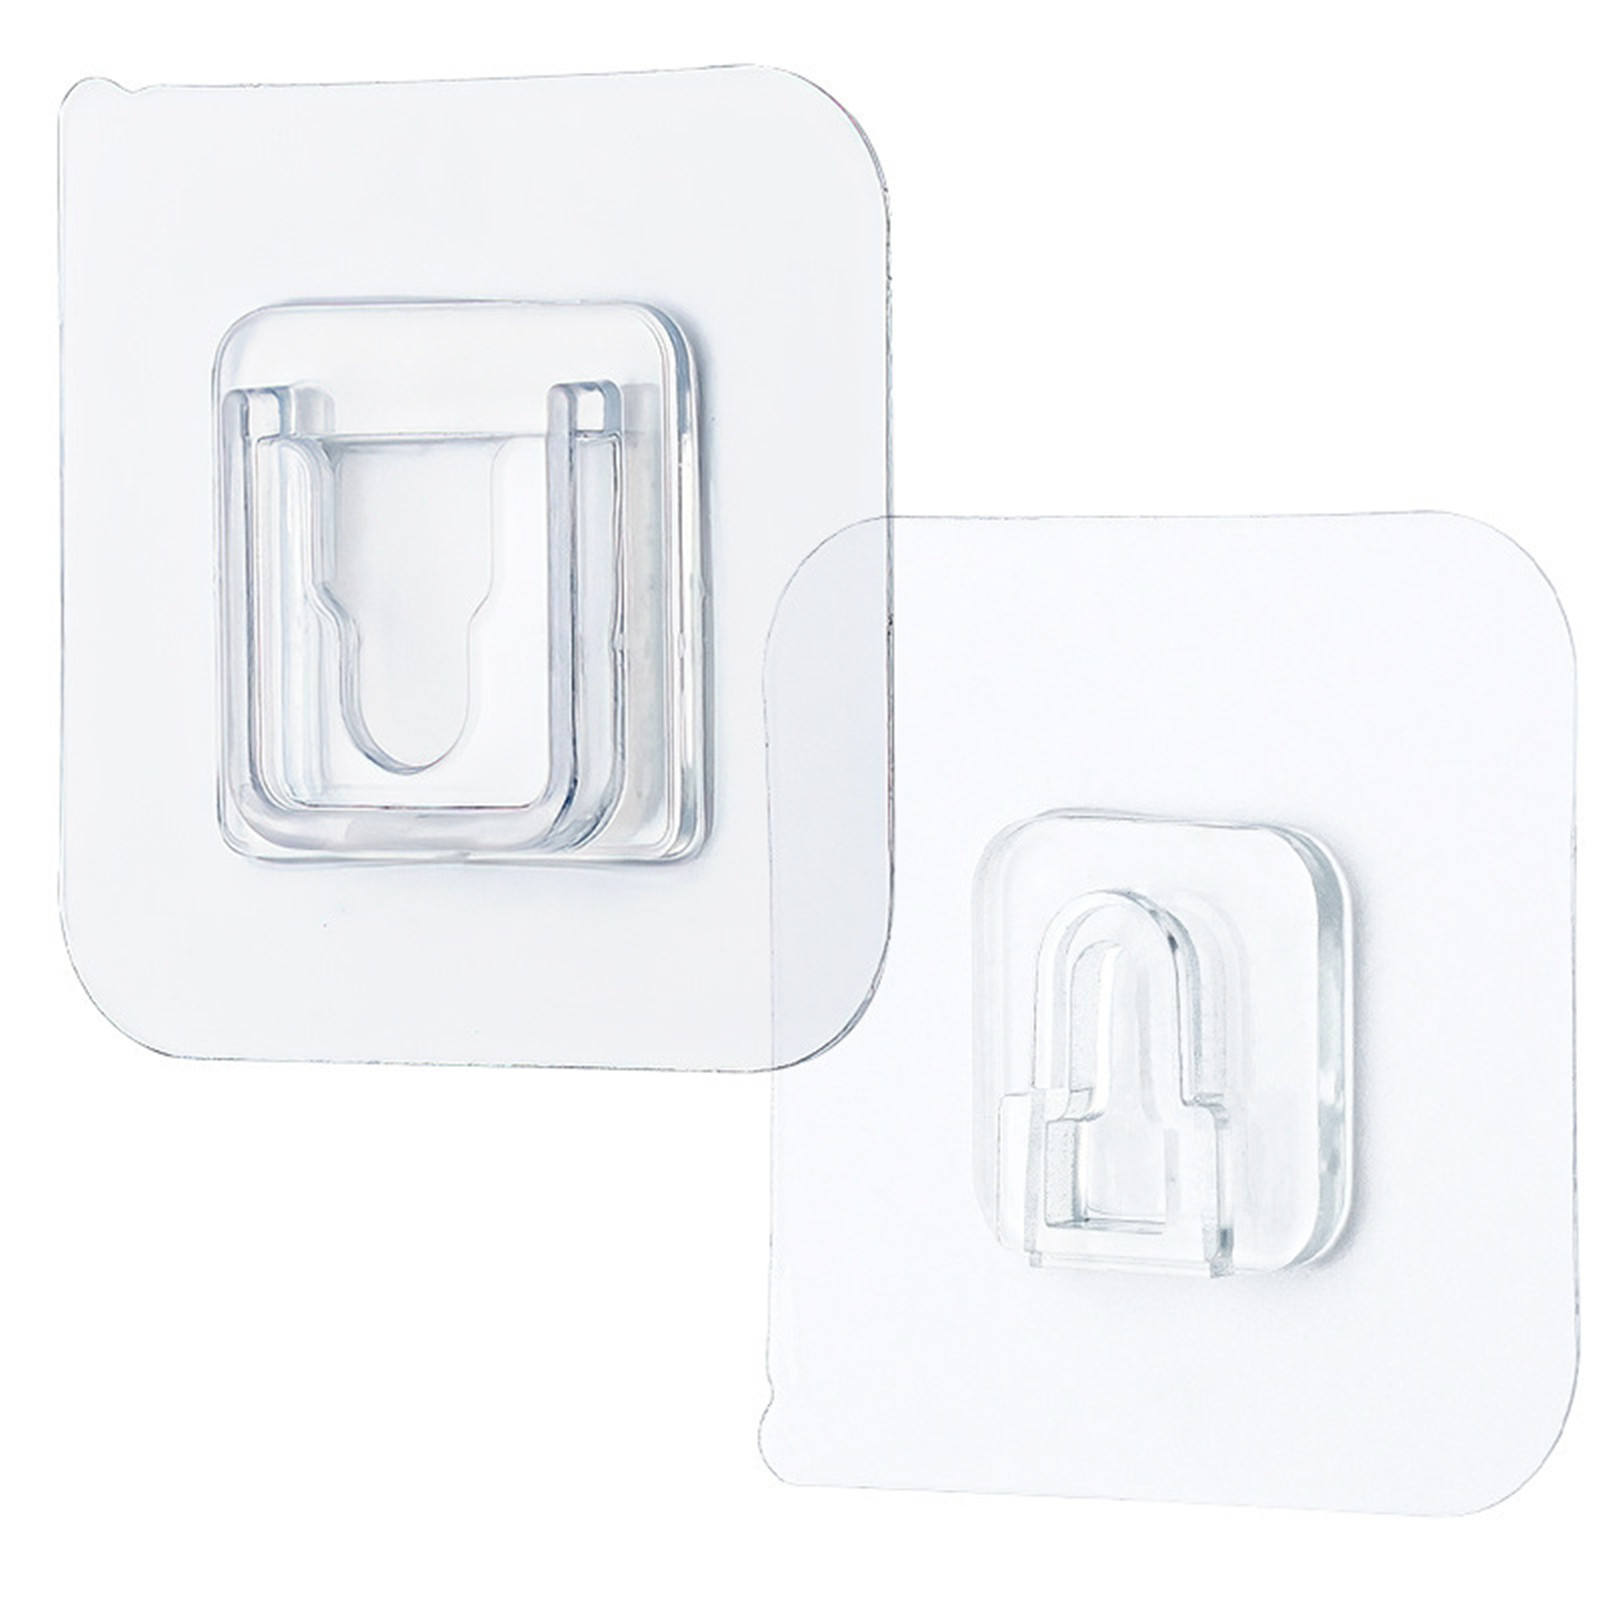 Adhesive Wall Hooks Double-sided Transparent Flexible Hooks